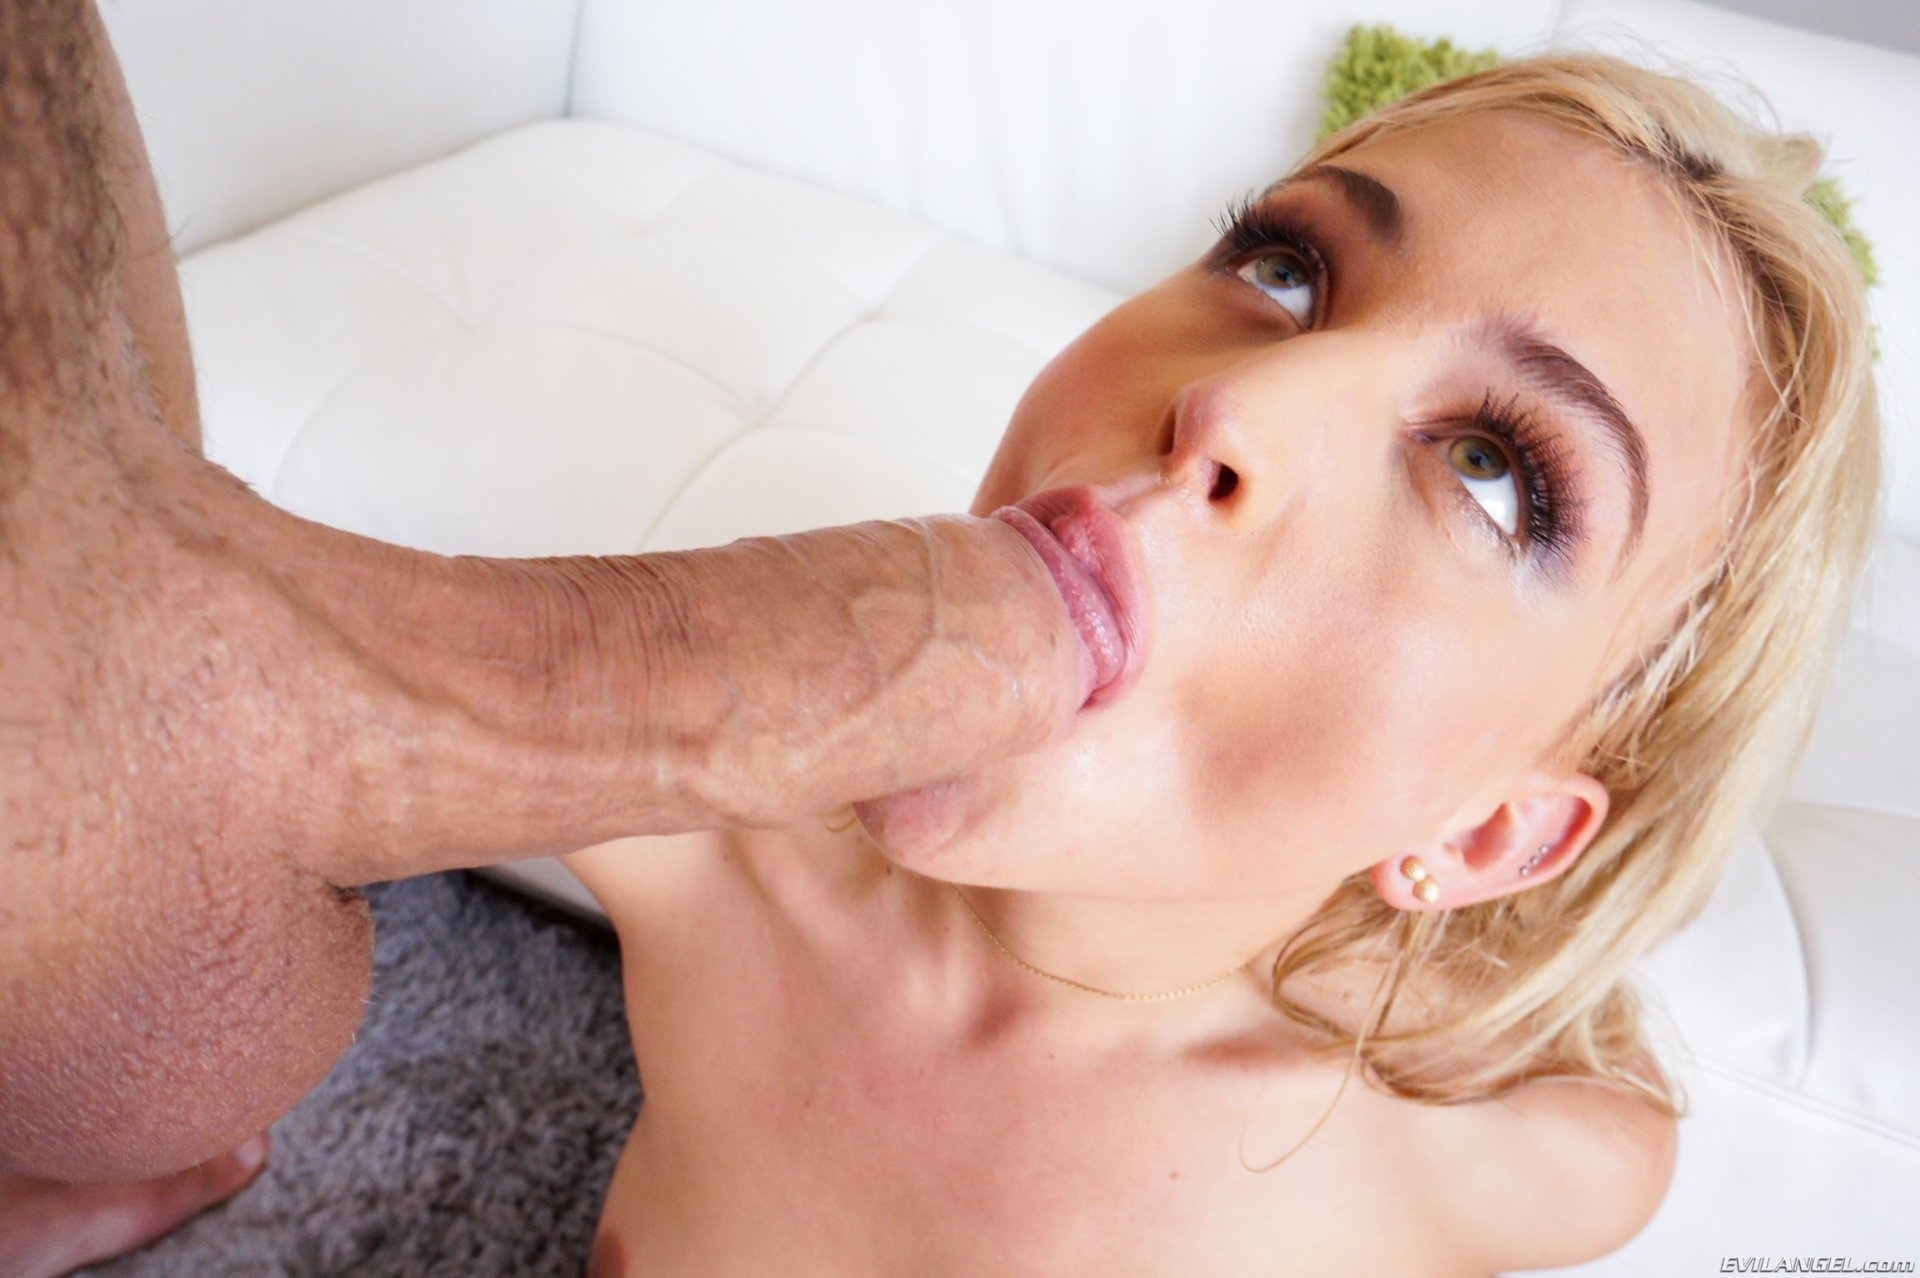 Turkish webcam porn mature wife imagefap